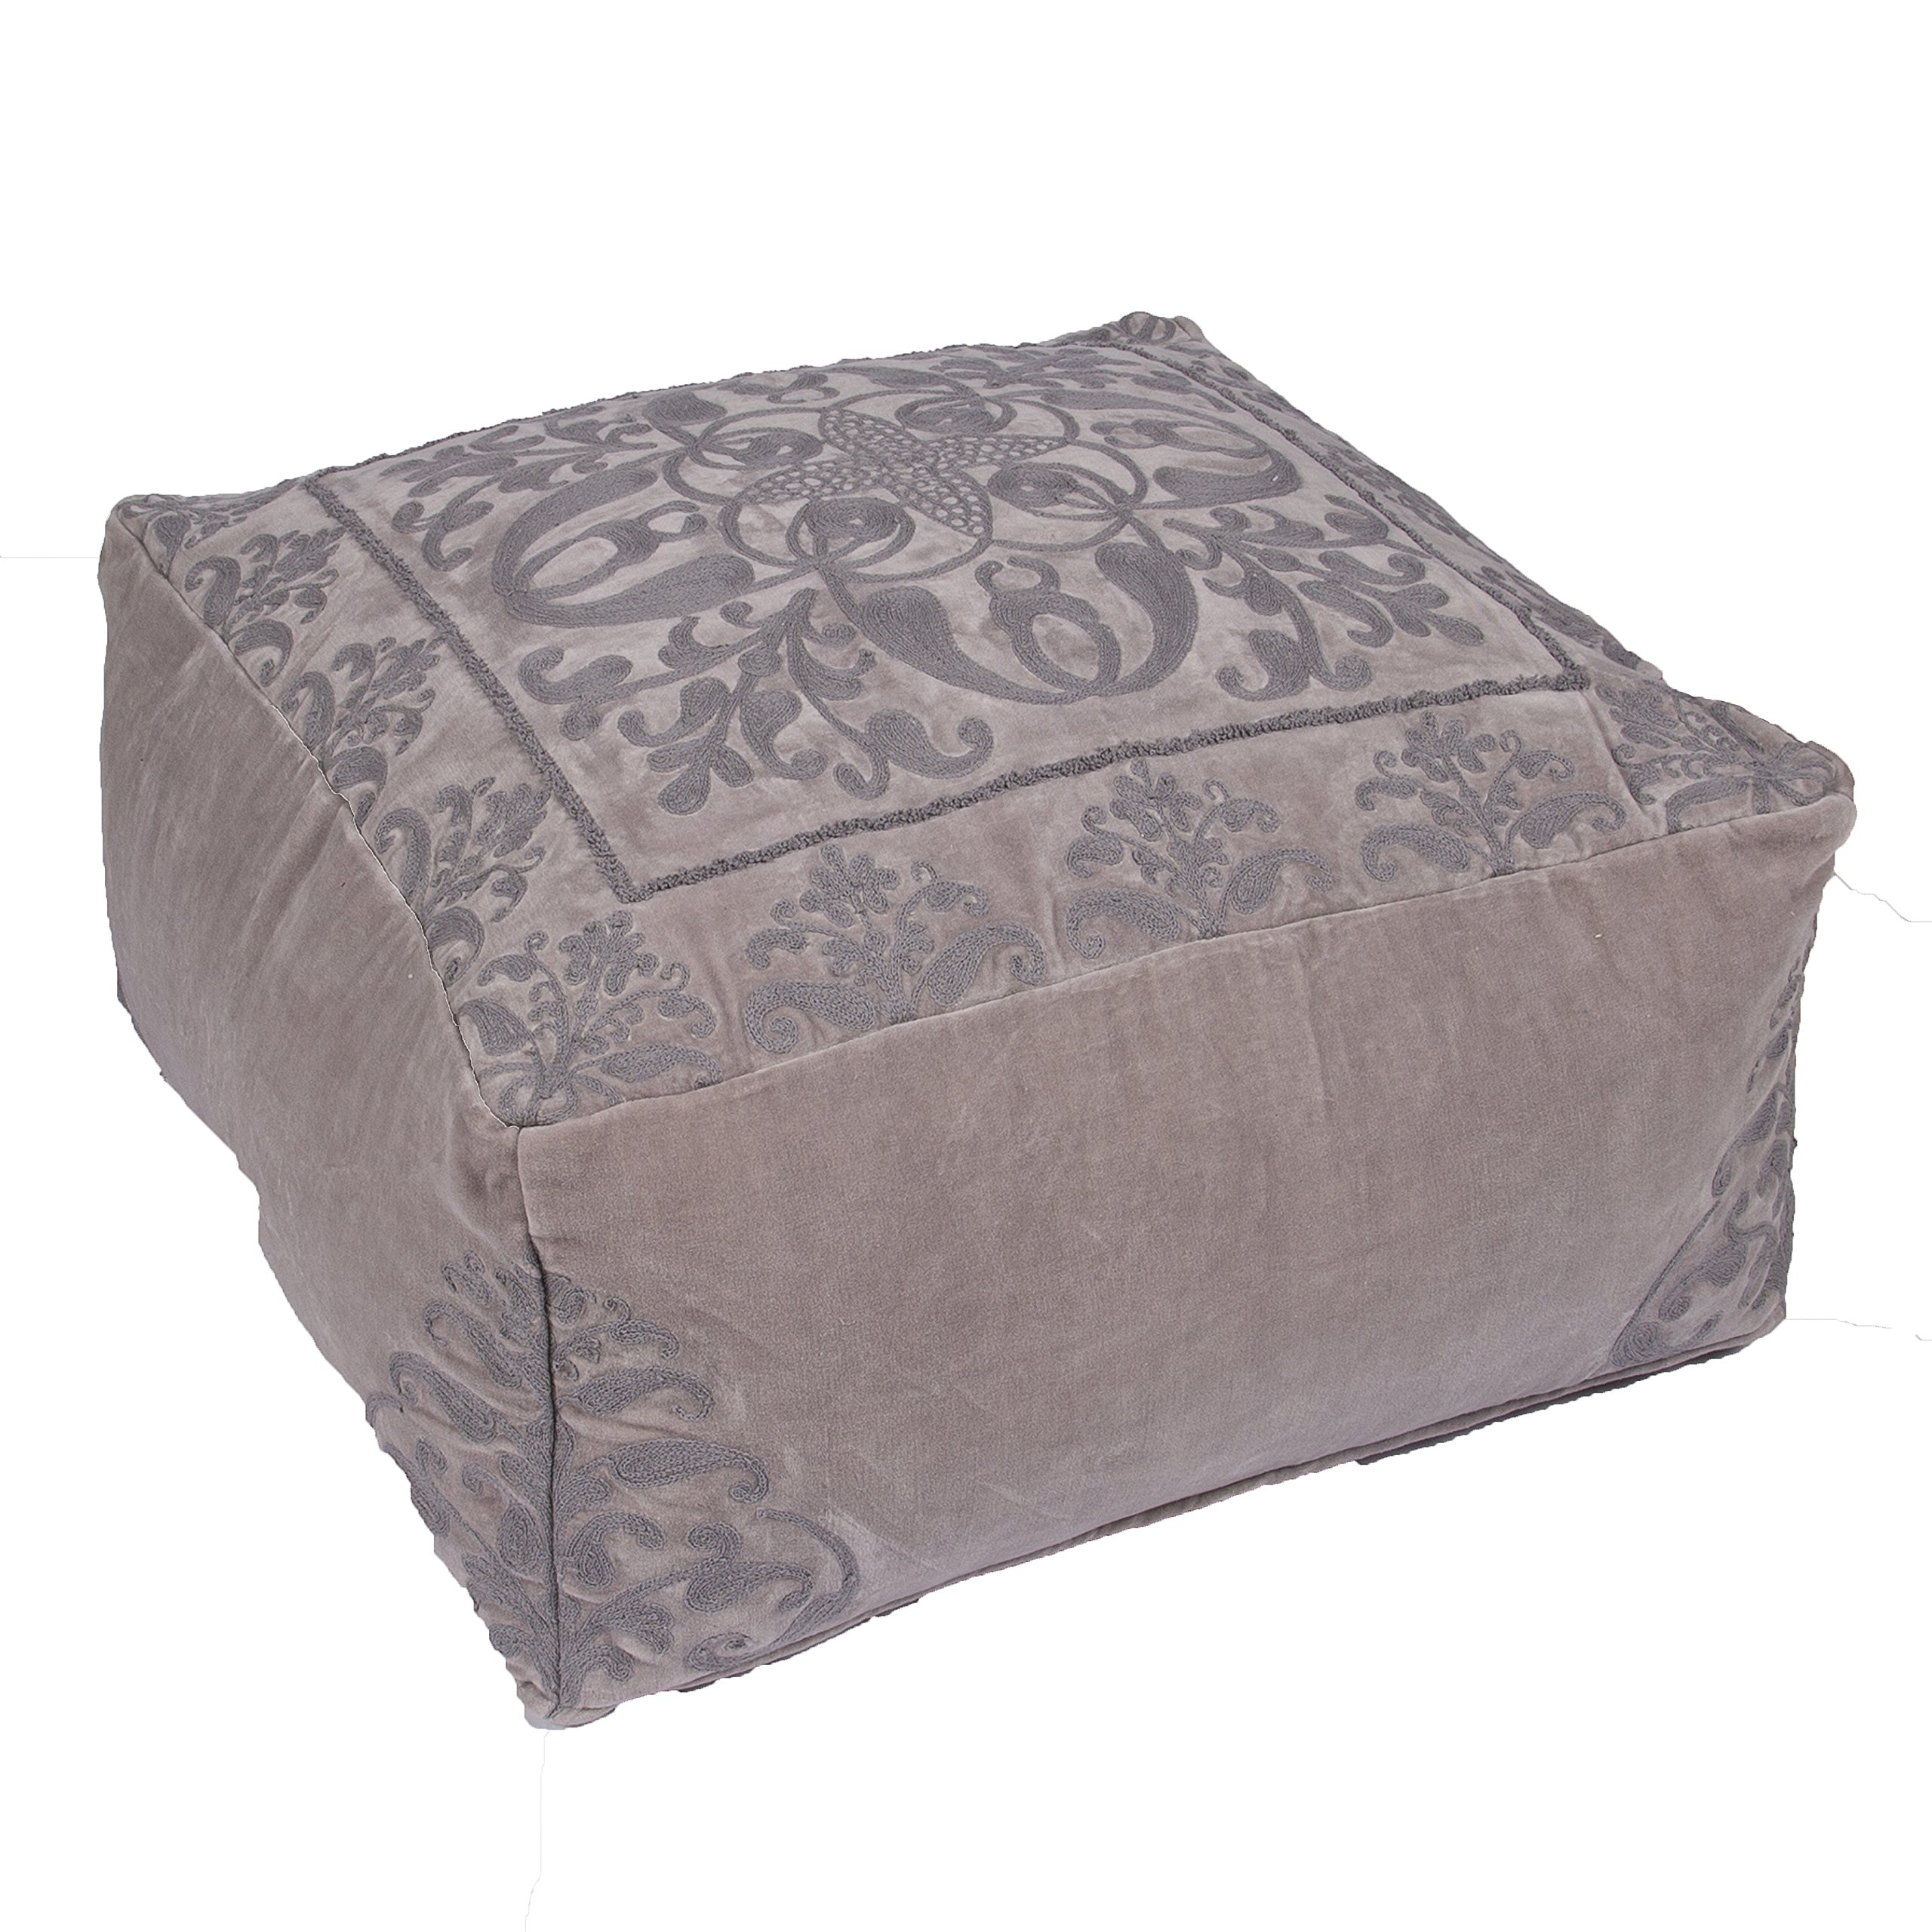 Jaipur Floral Pattern Gray Cotton Pouf, 24-Inch x 24-Inch x 12-Inch, Creme Brulee Traditions